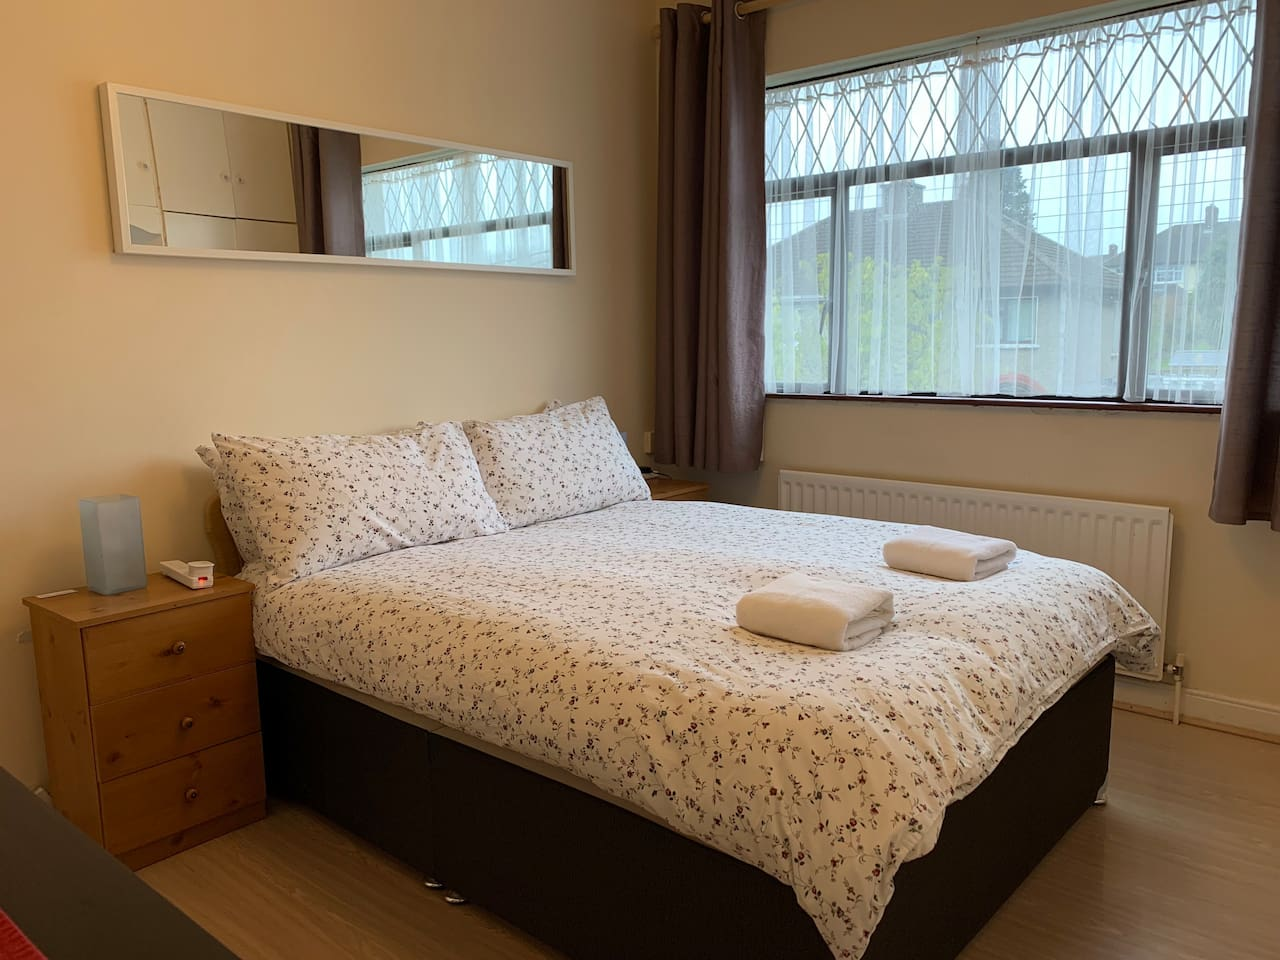 Comfy bed with an excellent quality mattress and a feather and down quilt